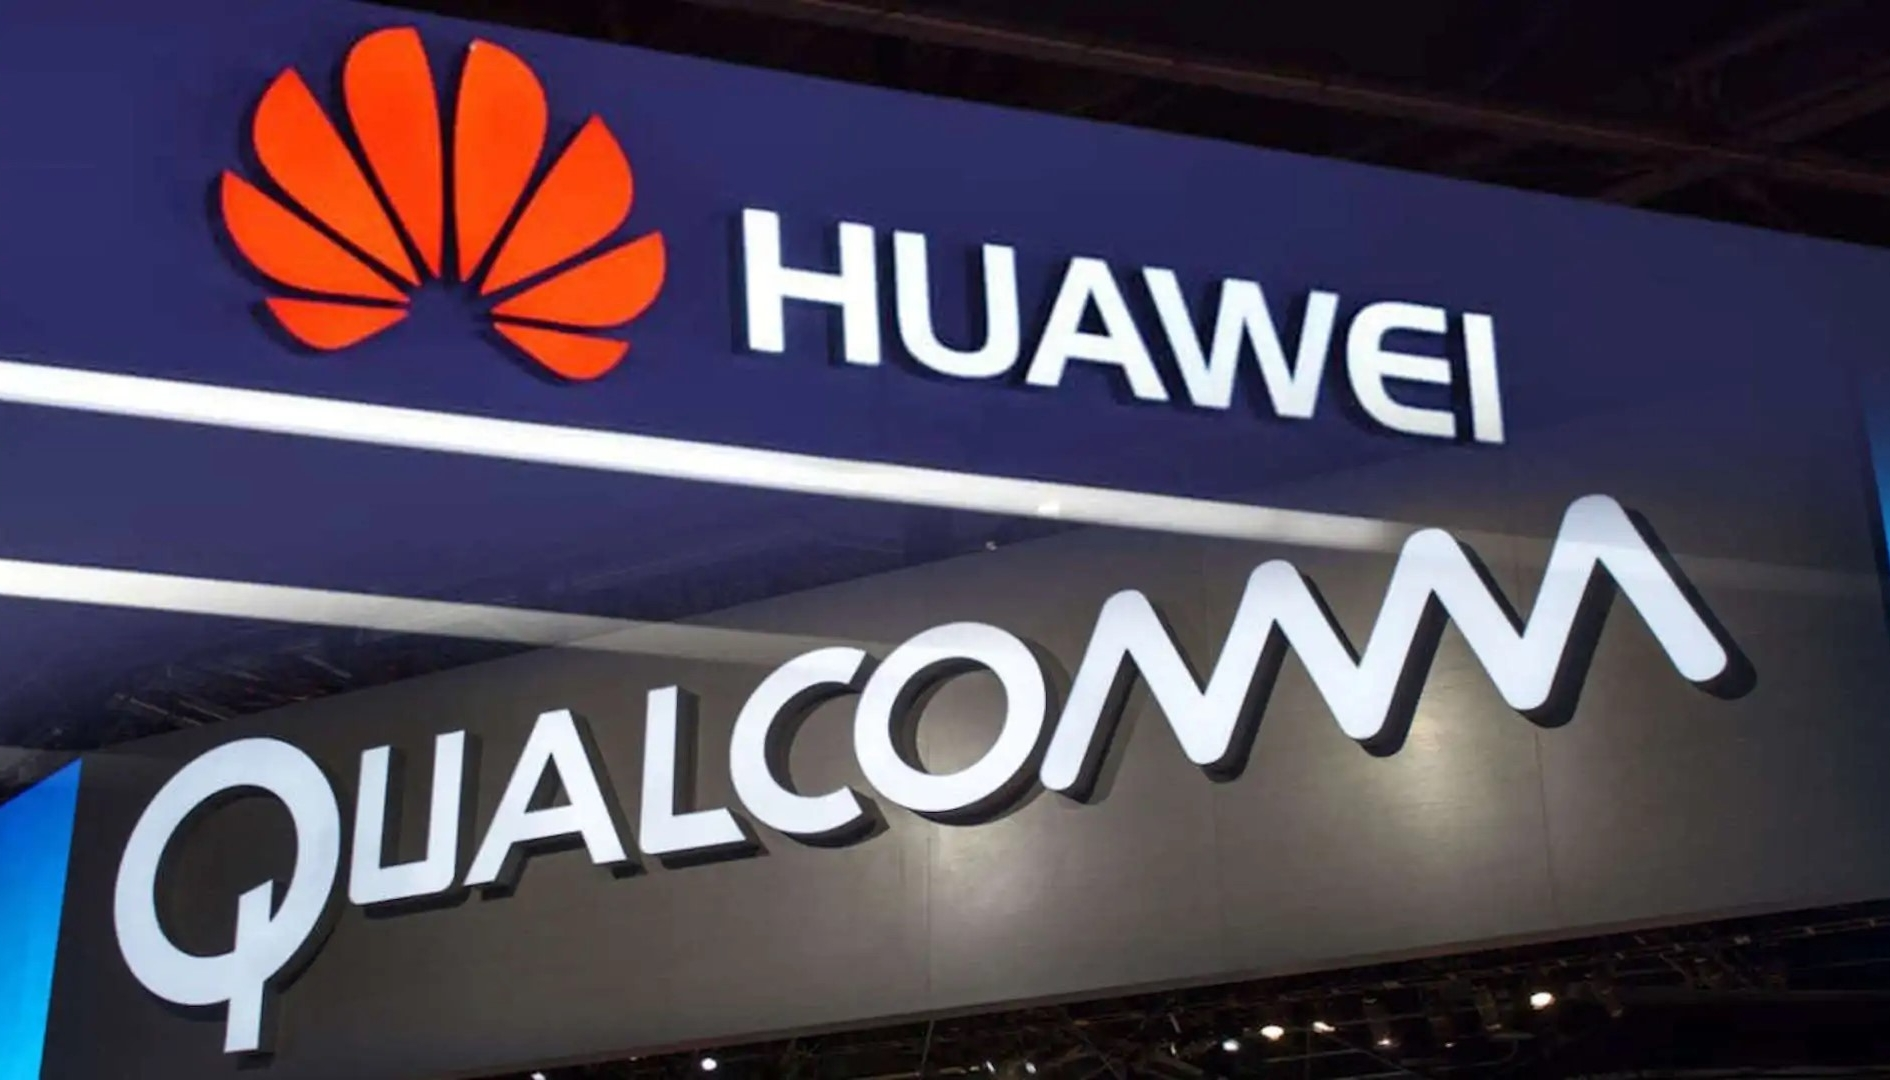 Qualcomm fa pressing su Trump